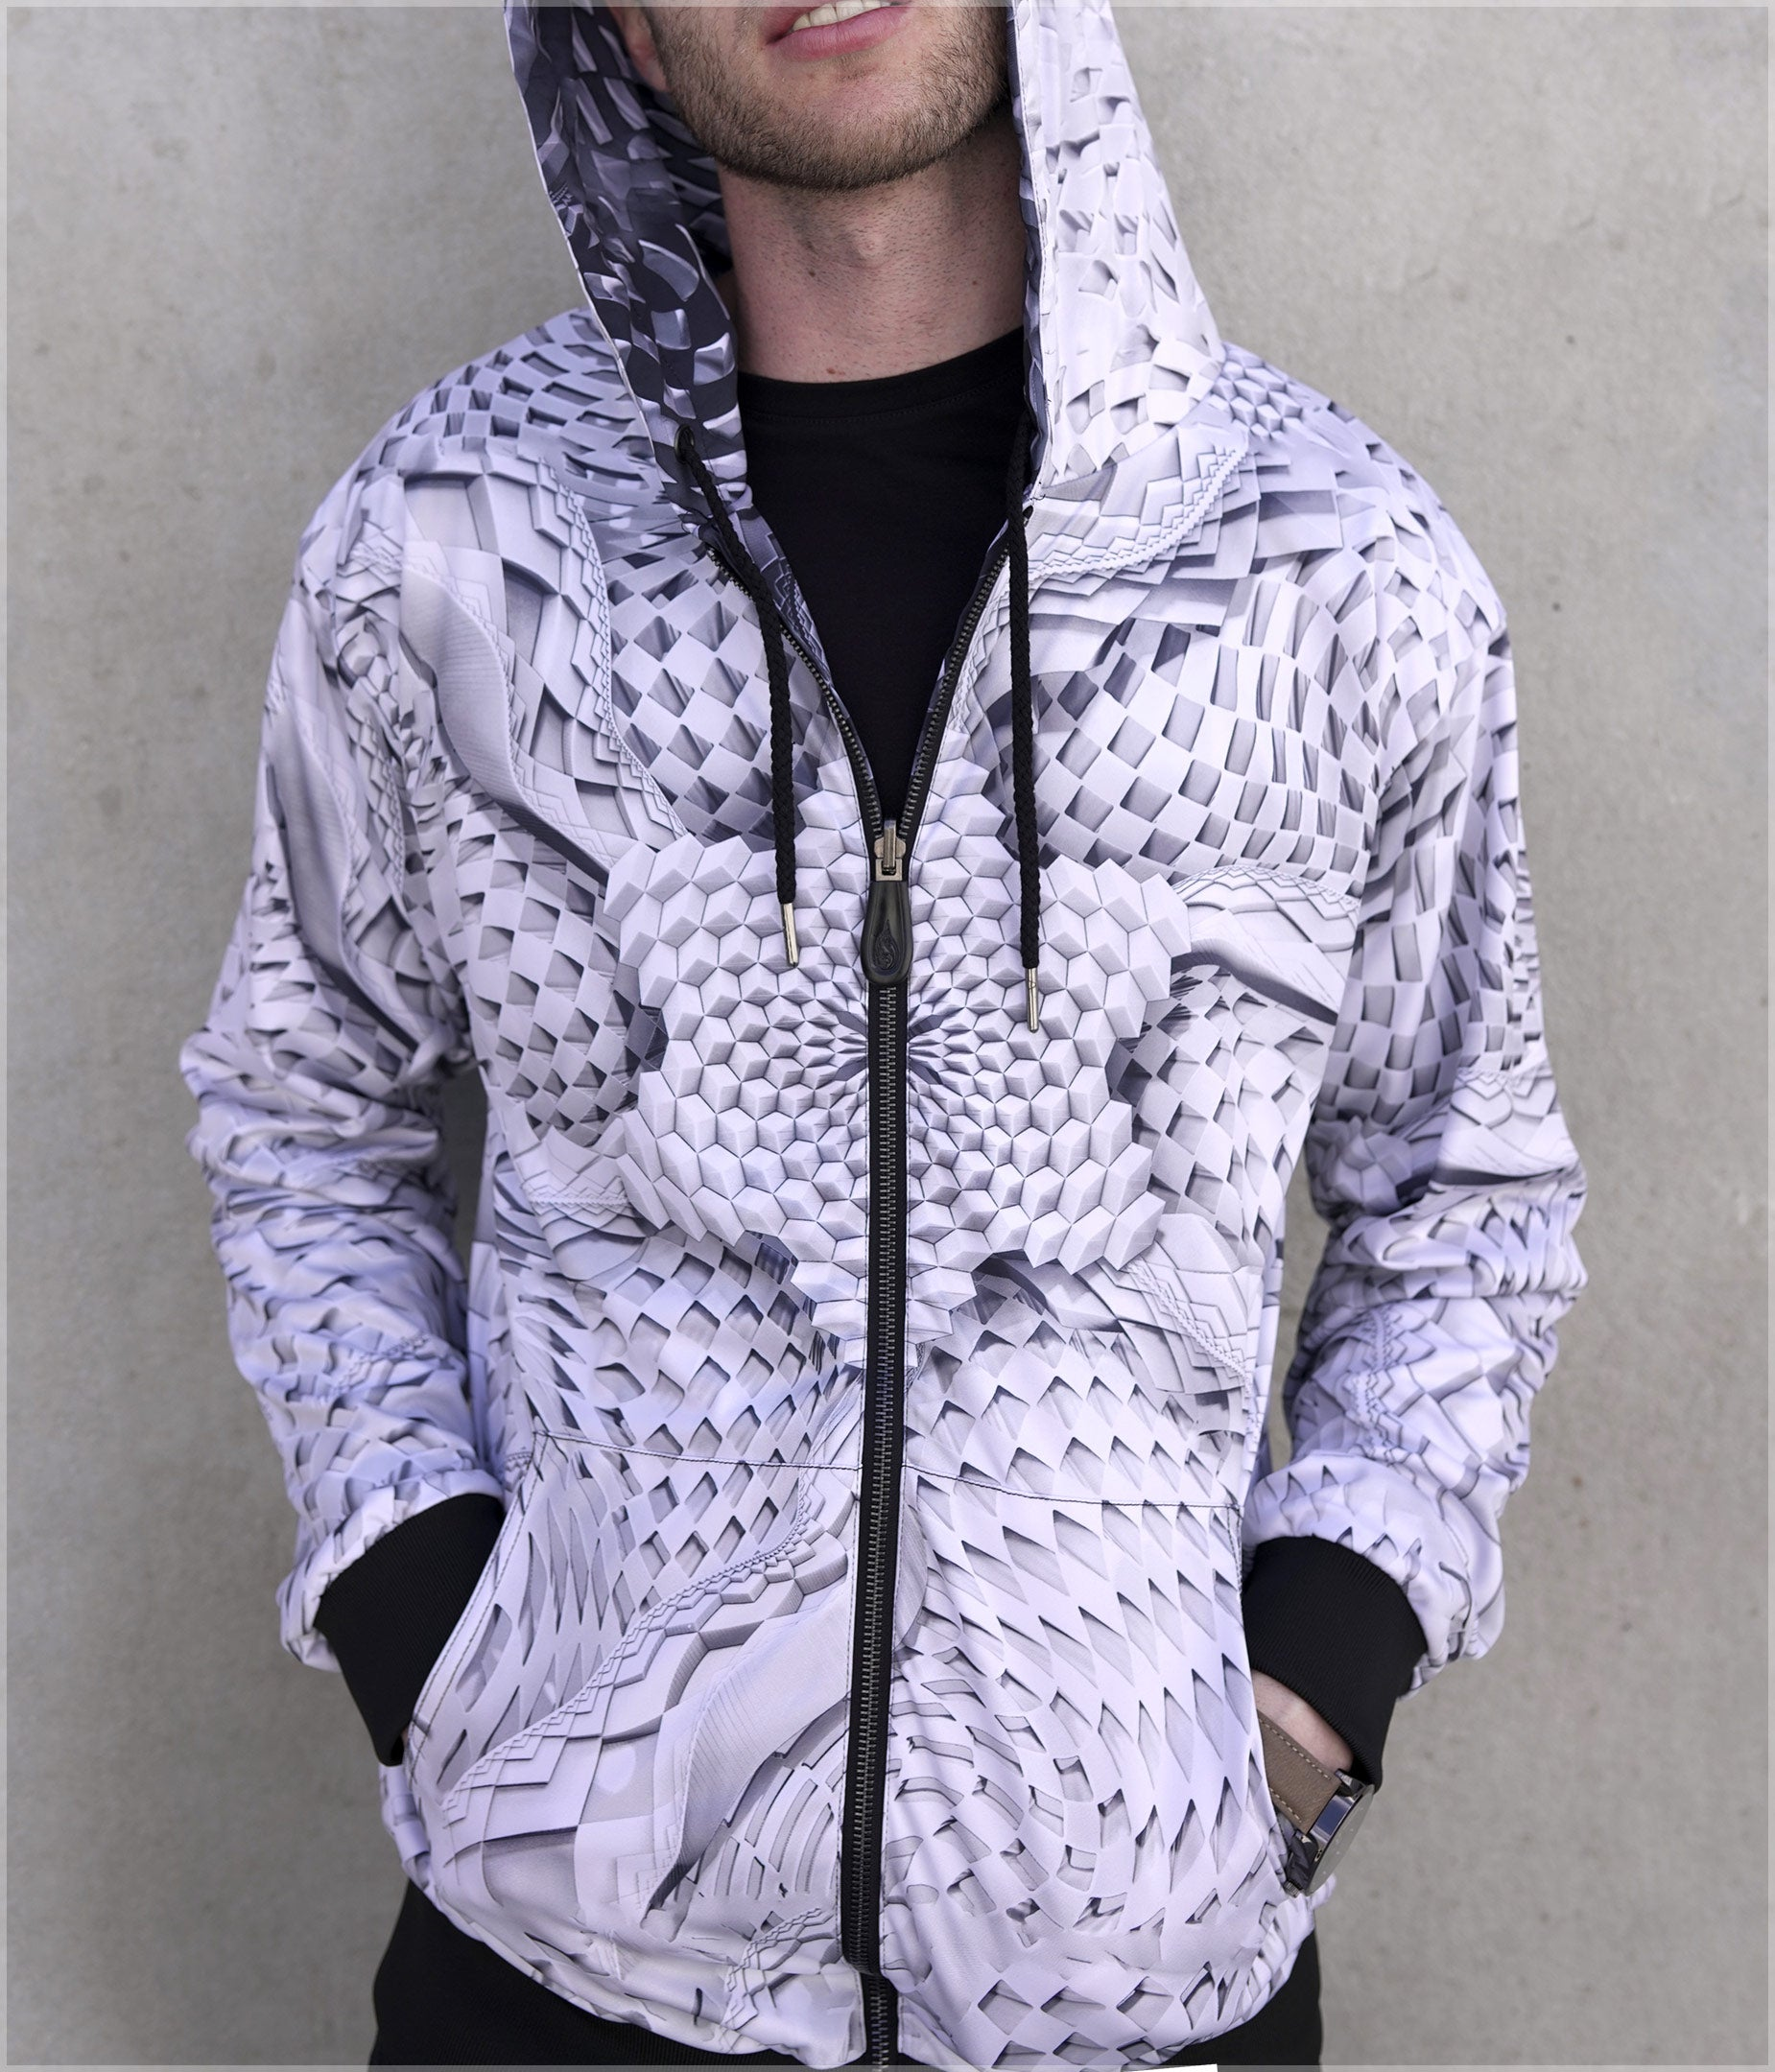 Light Star / Dark Star Lightweight Reversible Satin Jacket by Ben Ridgway